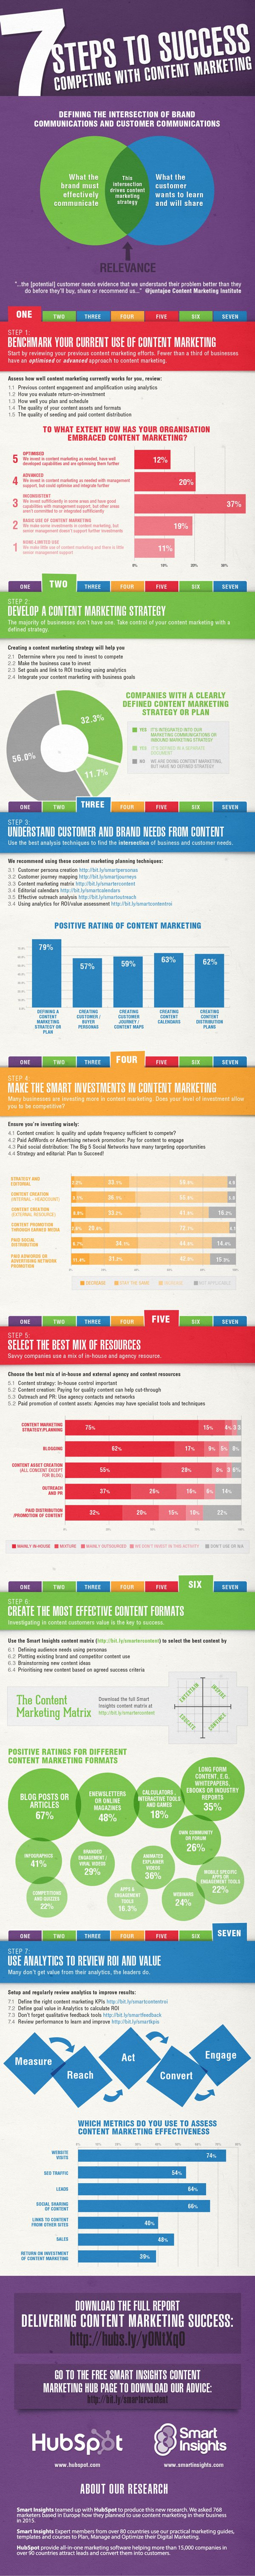 Content-Marketing-success-survey.jpg